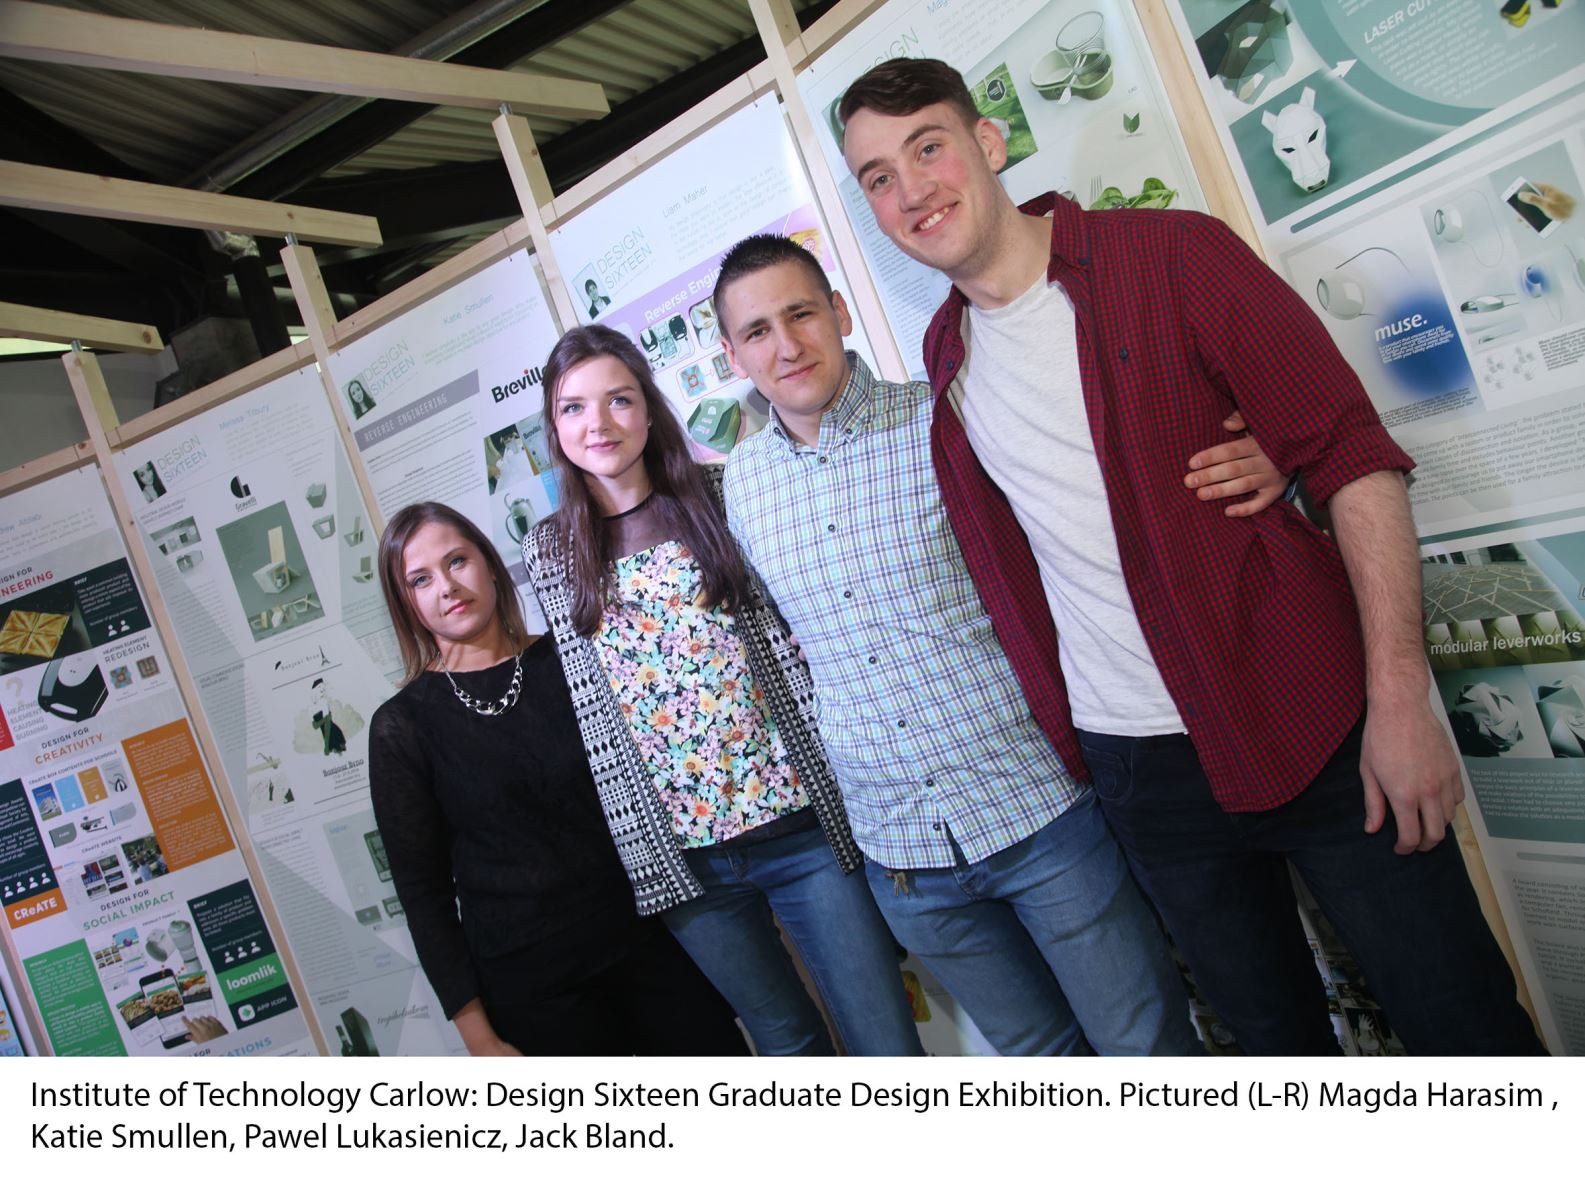 DESIGN SIXTEEN opens at Institute of Technology Carlow